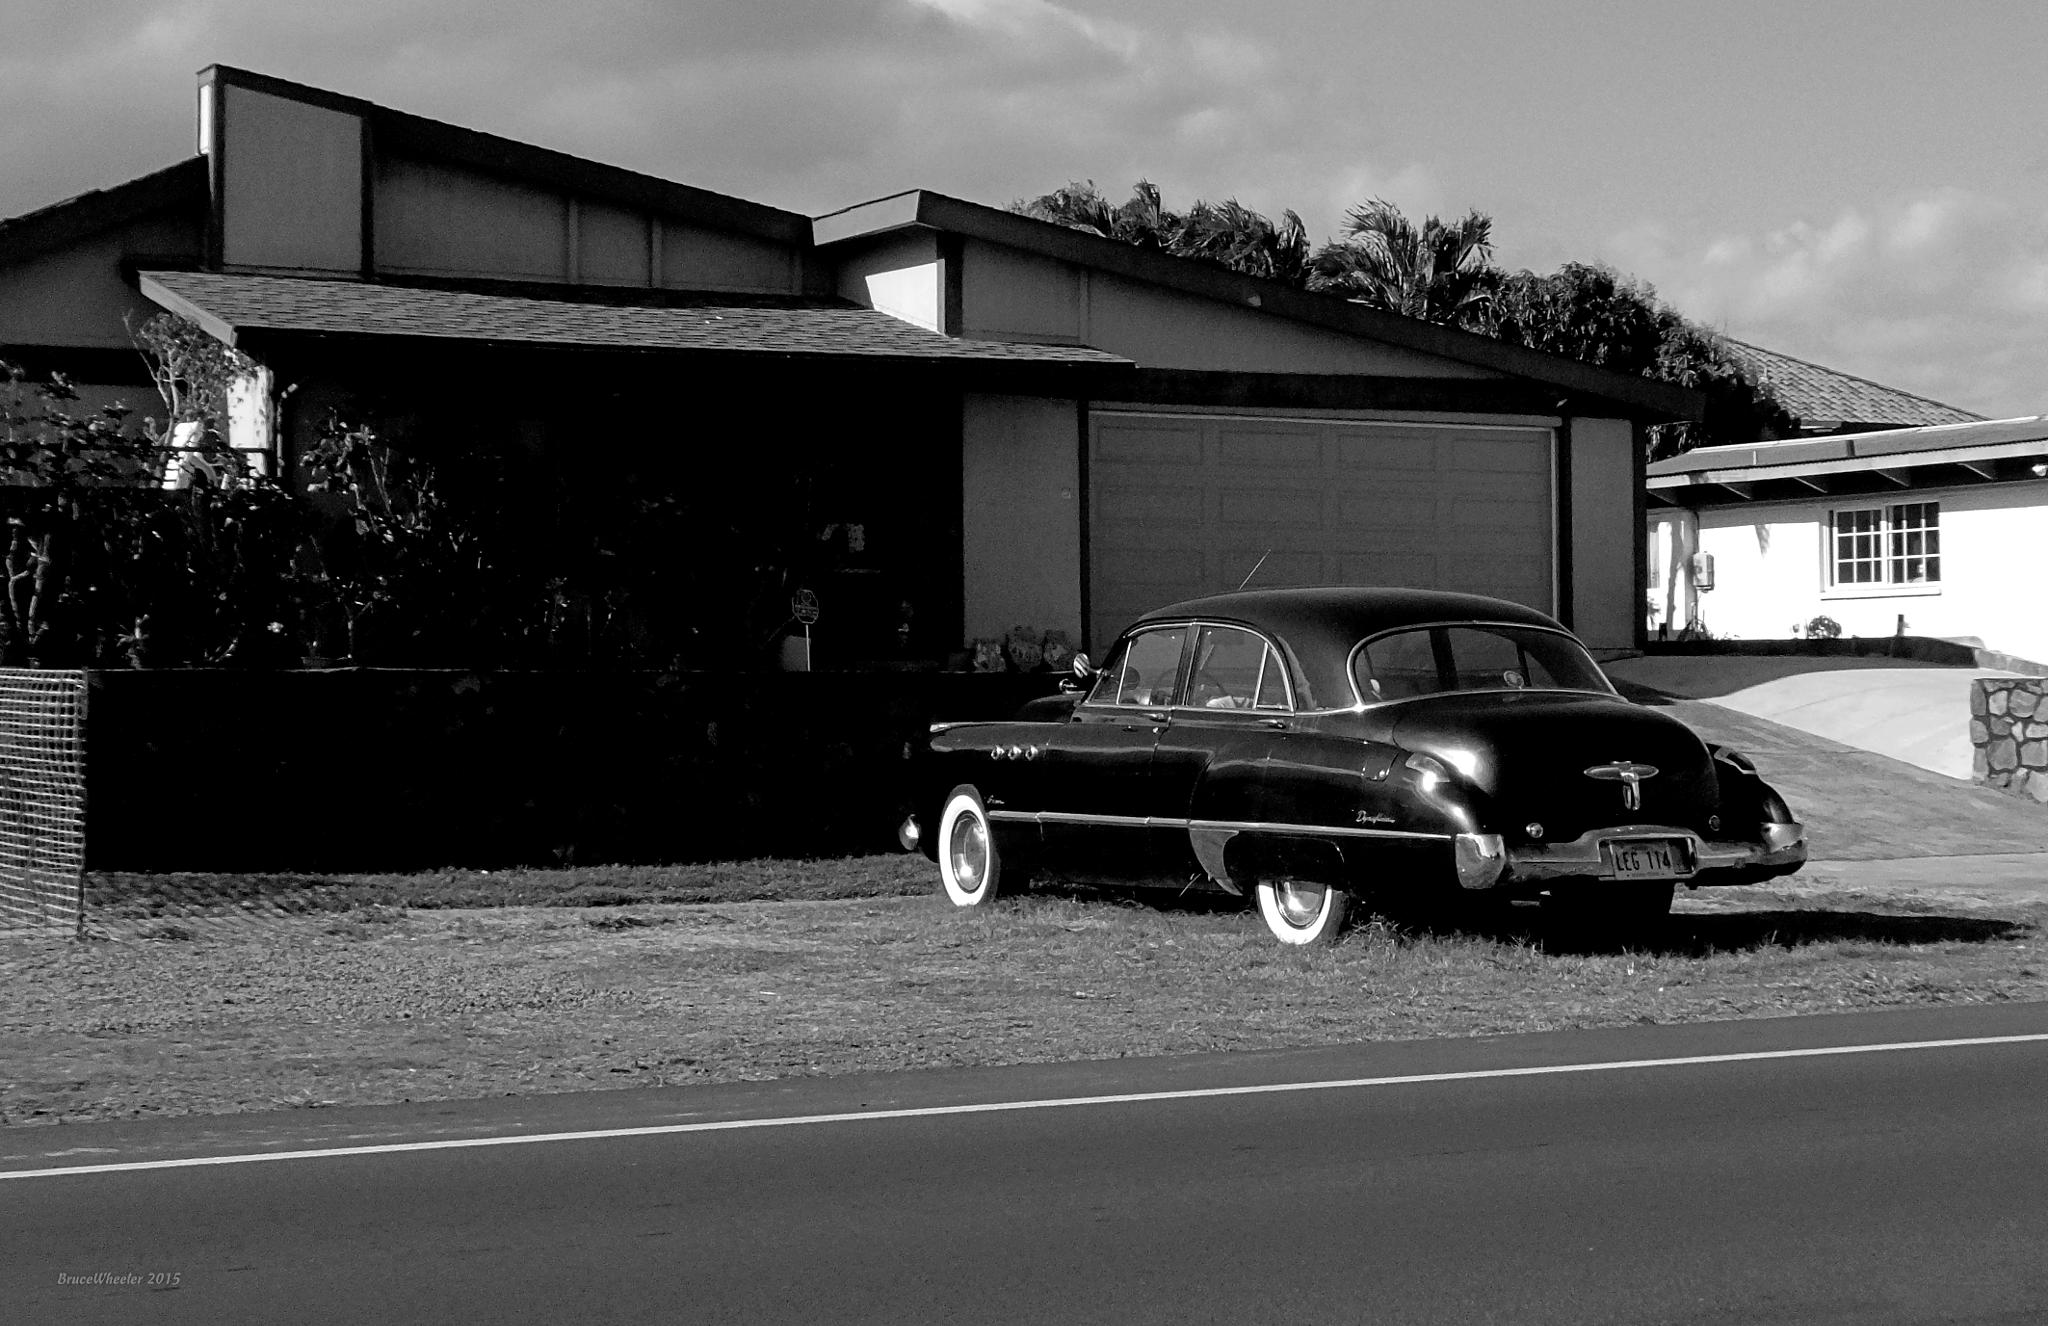 Period Piece ('49 Buick) by Bruce Wheeler